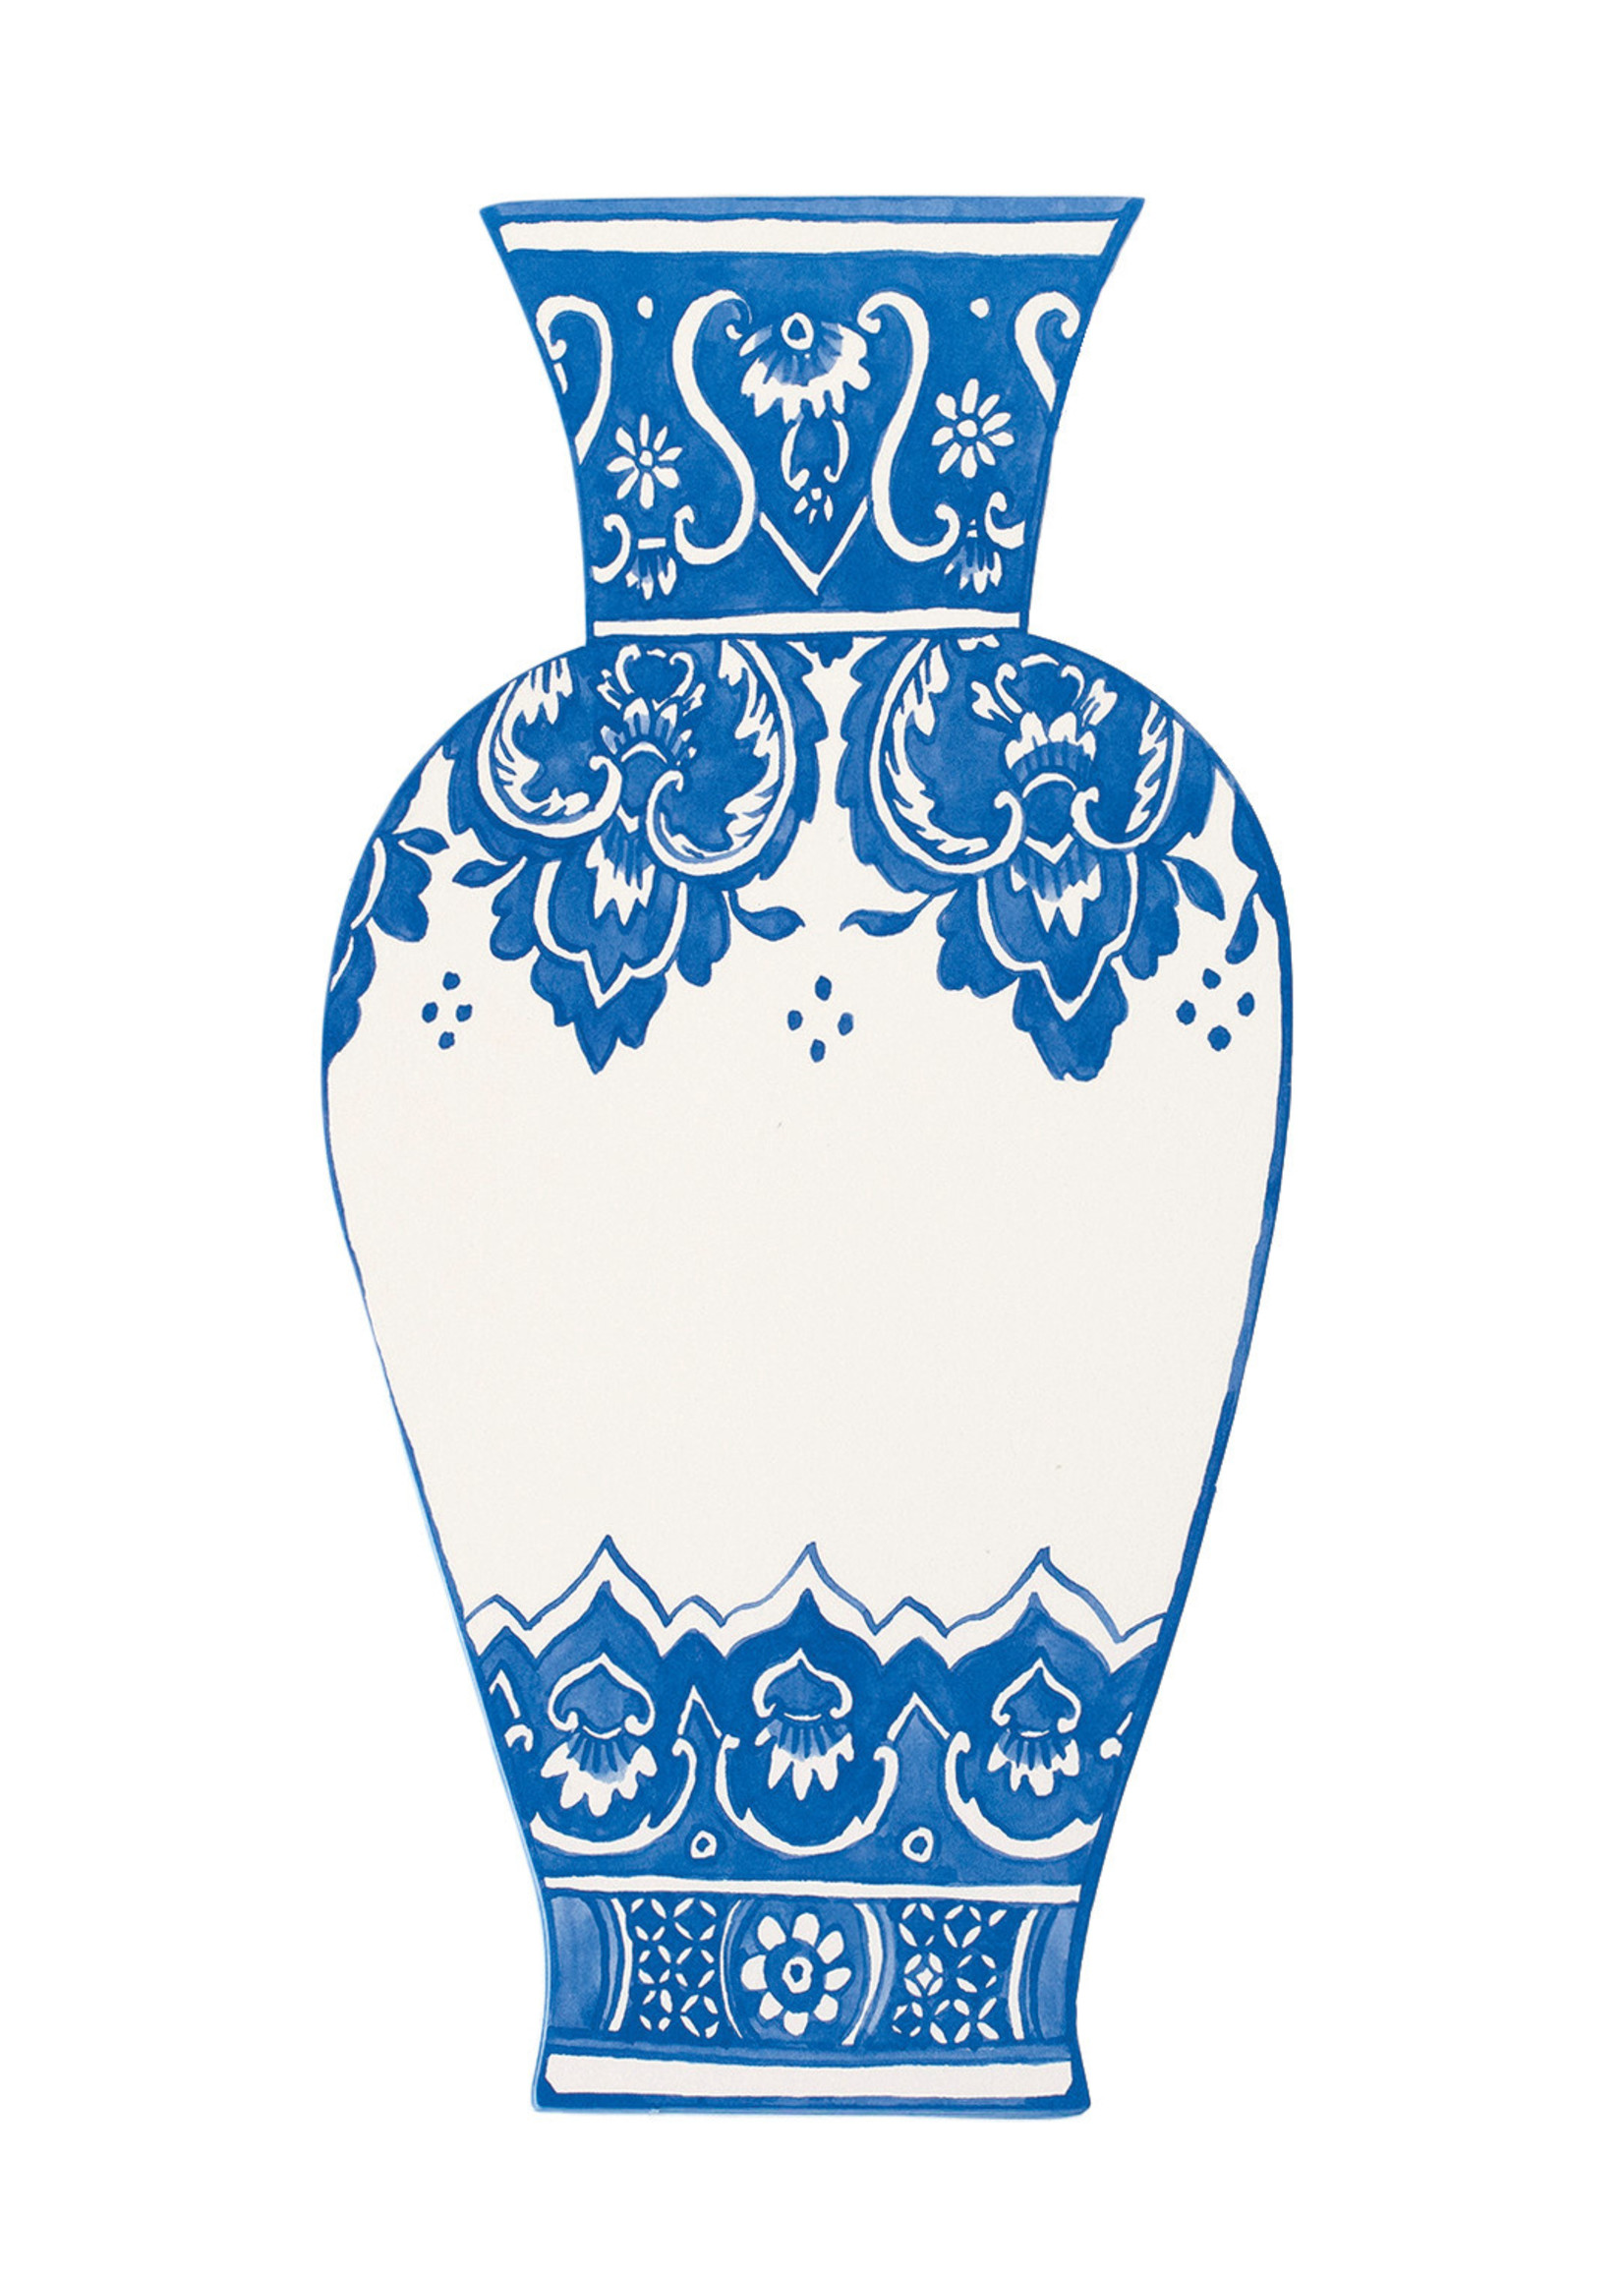 Hester & Cook Table Accents - China Blue Vase (pack of 12)